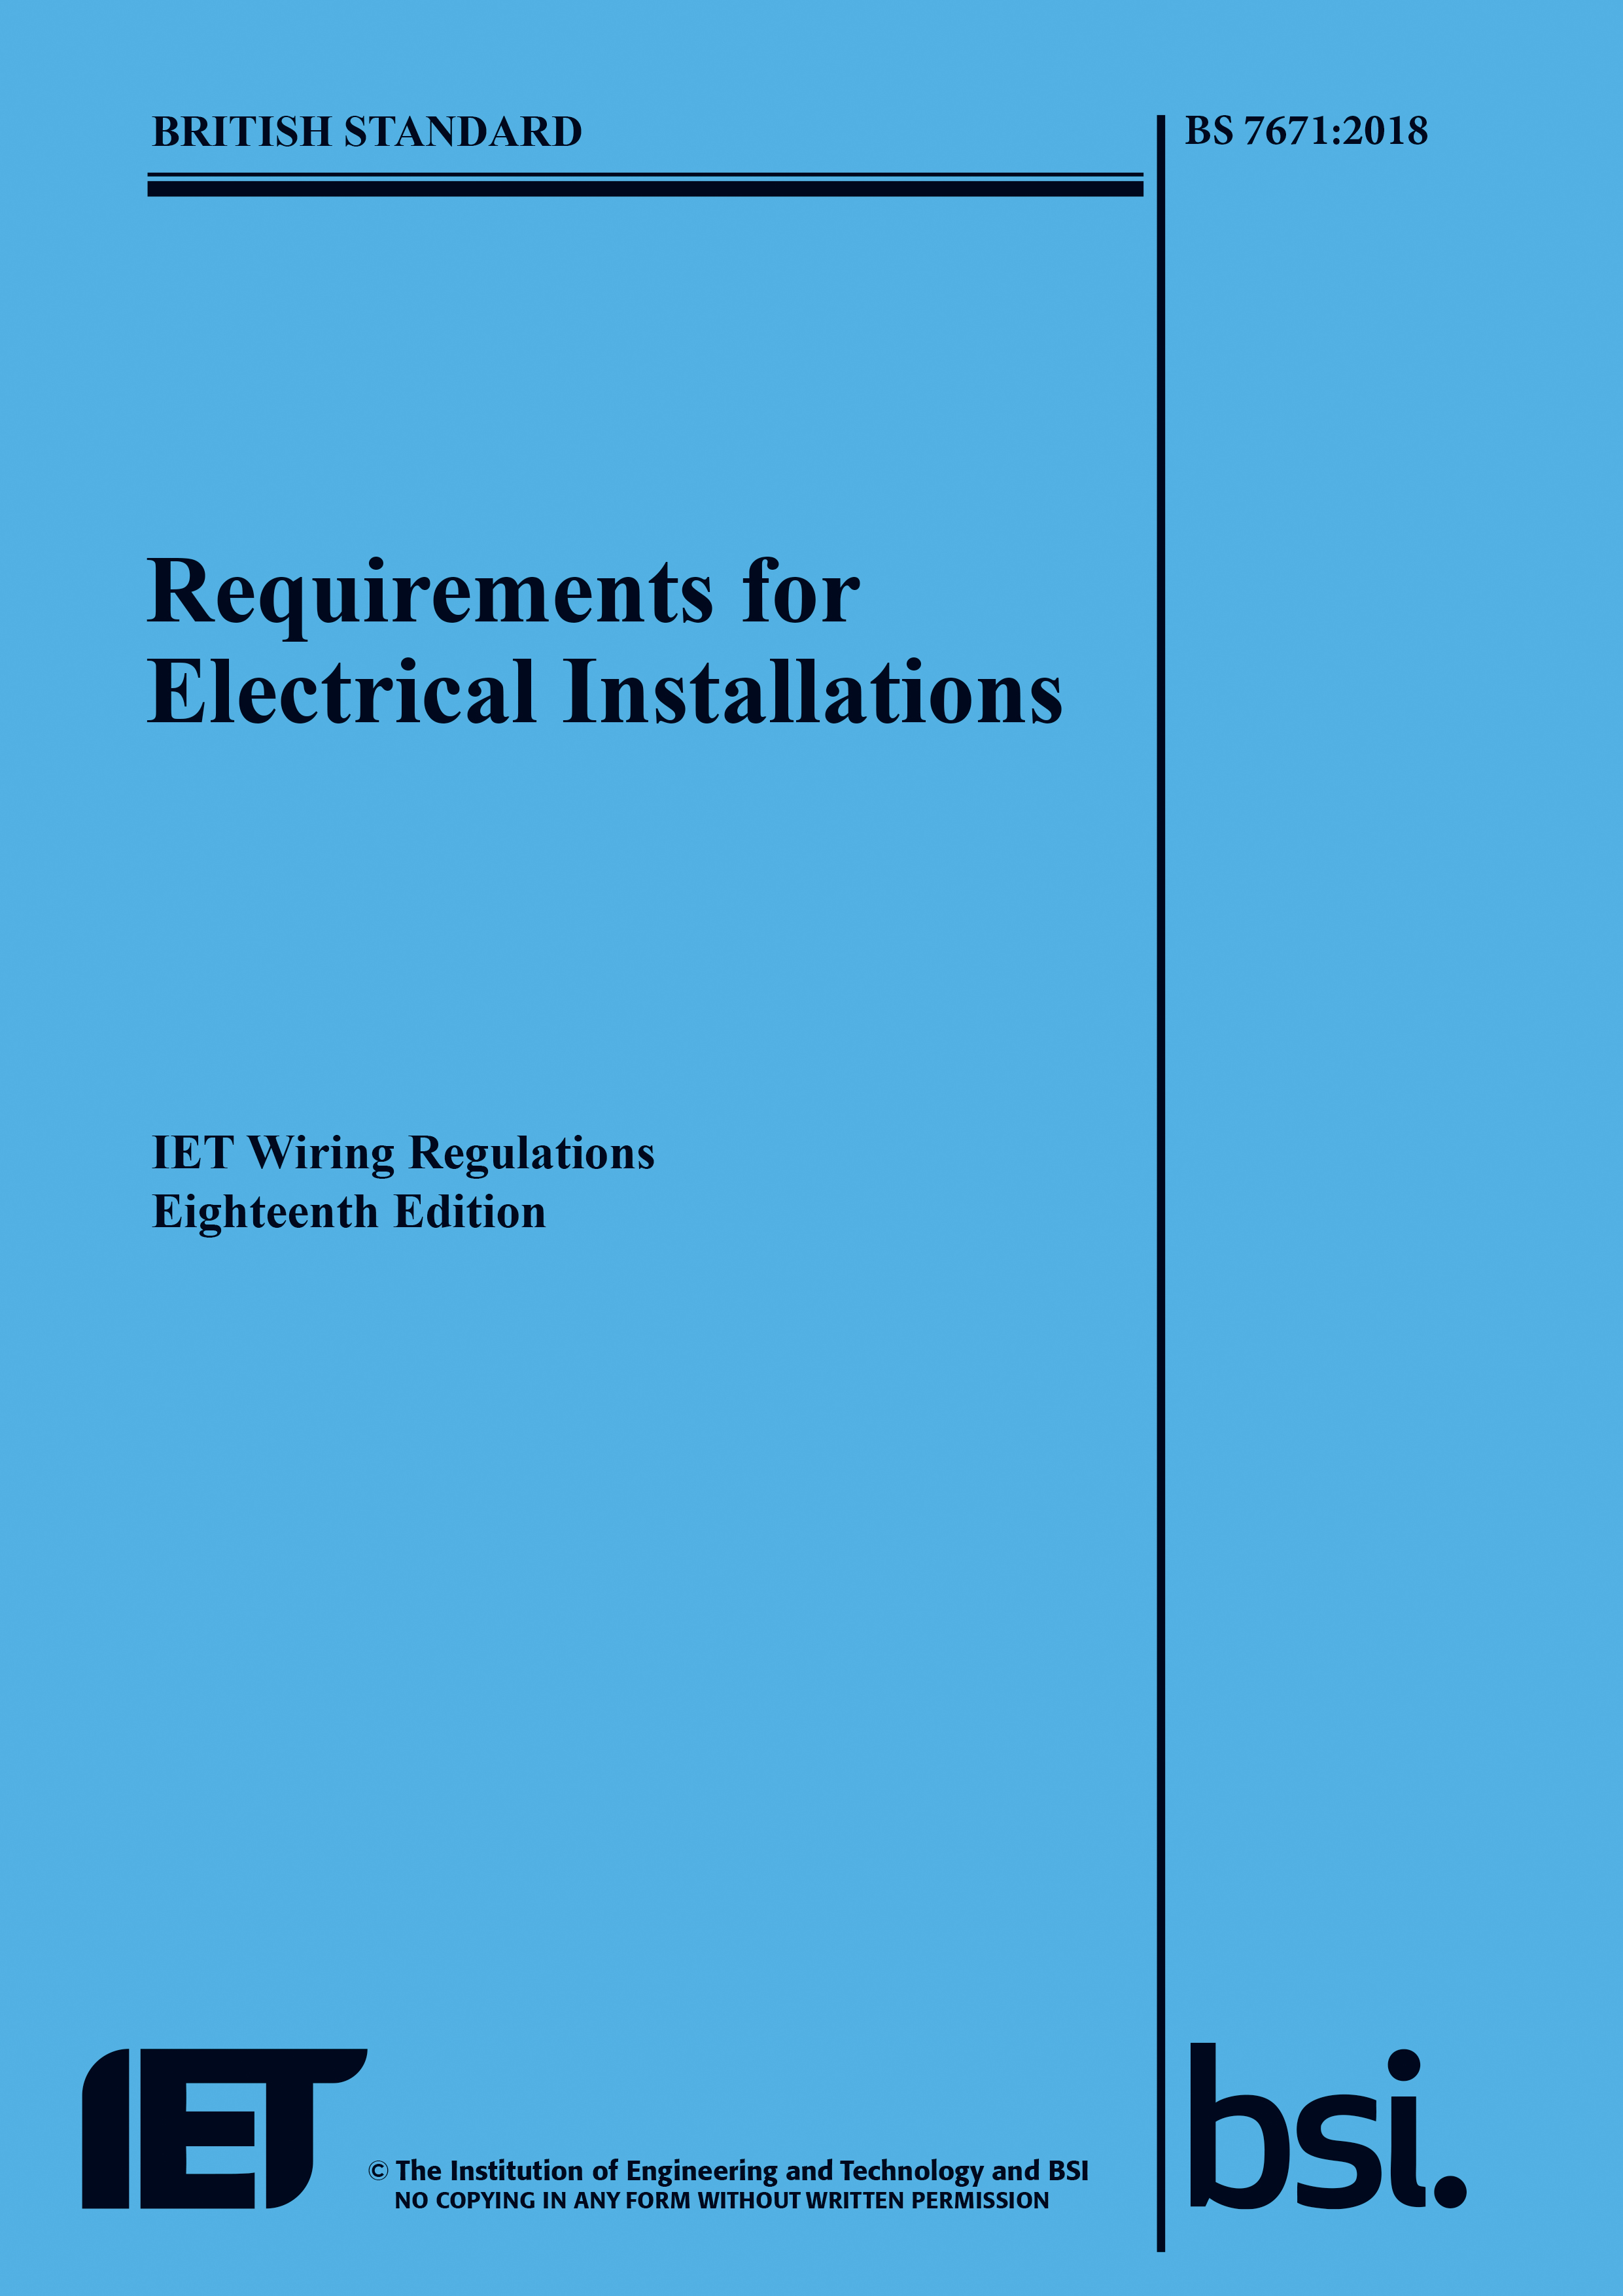 The 18th Edition Bs 76712018 Launch Revisited Iet Electrical Wiring Help Needed Ukcampsitecouk Caravans And Caravanning Forum